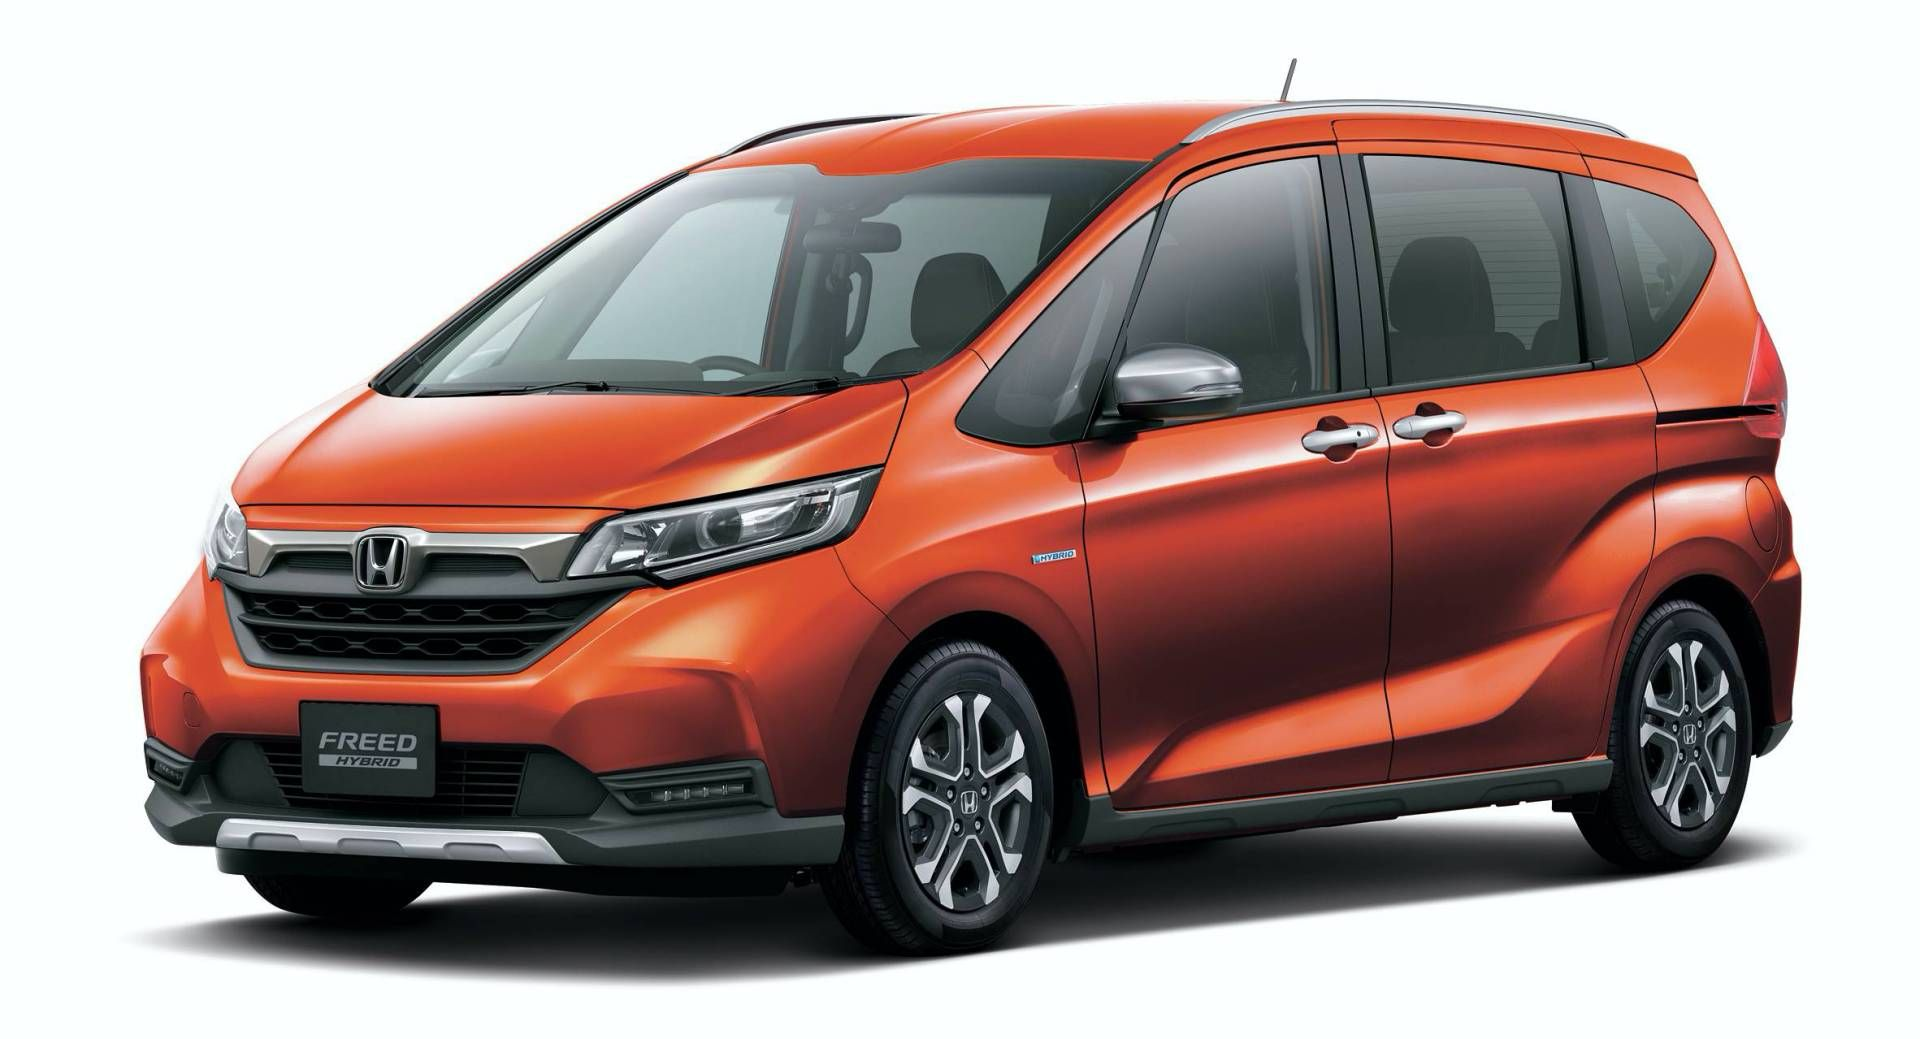 Sharing The Platform With The Honda Fit Jazz The Honda Freed Compact Minivan Offers Up To Seven Seats Honda Fit Honda Fit Jazz Mini Van